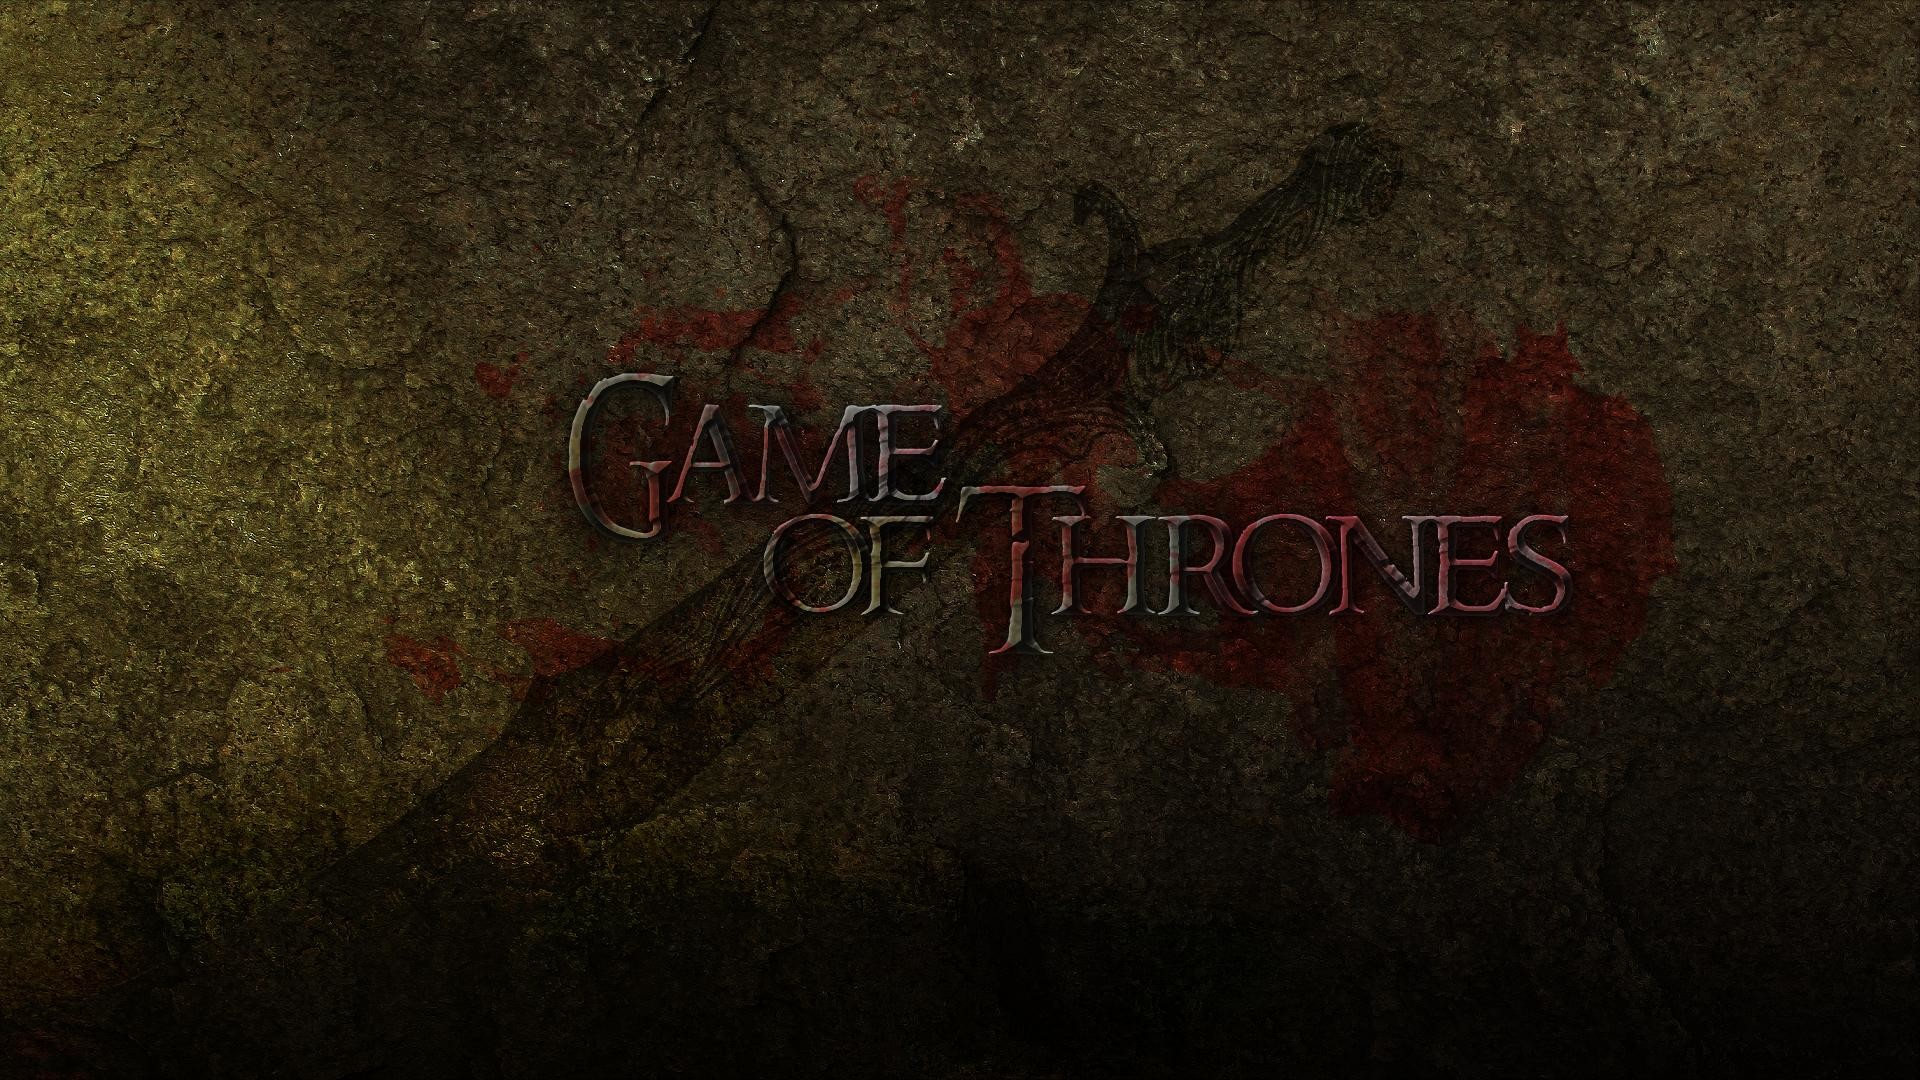 movies-10801-1920x-game-thrones-background